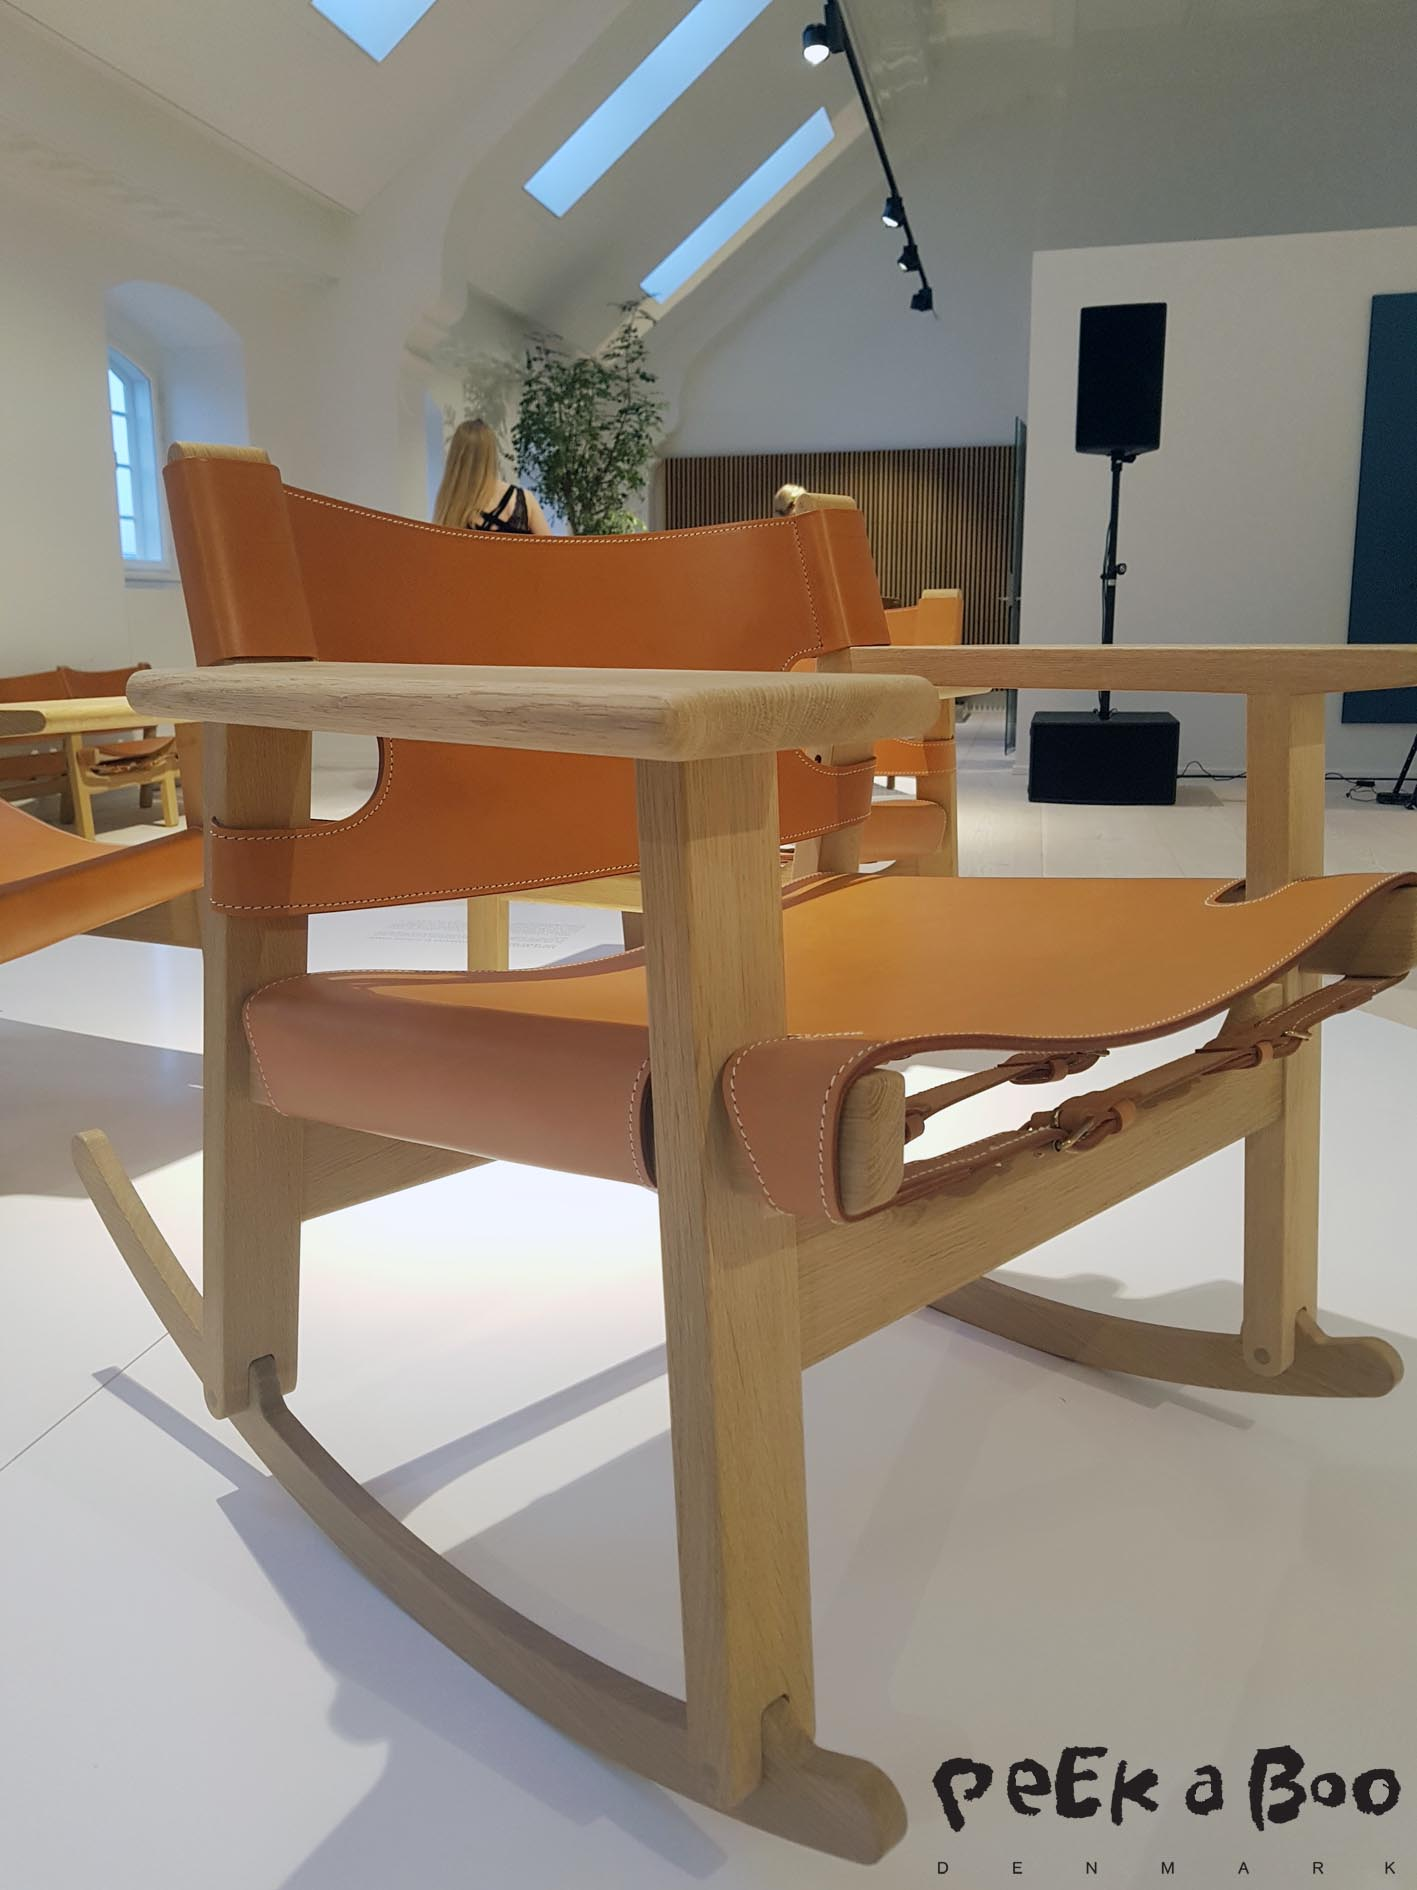 And the spanish chair as a rocking chair by Alfredo Haberli from Børge Mogensen's 100 years anniversary in 2014.